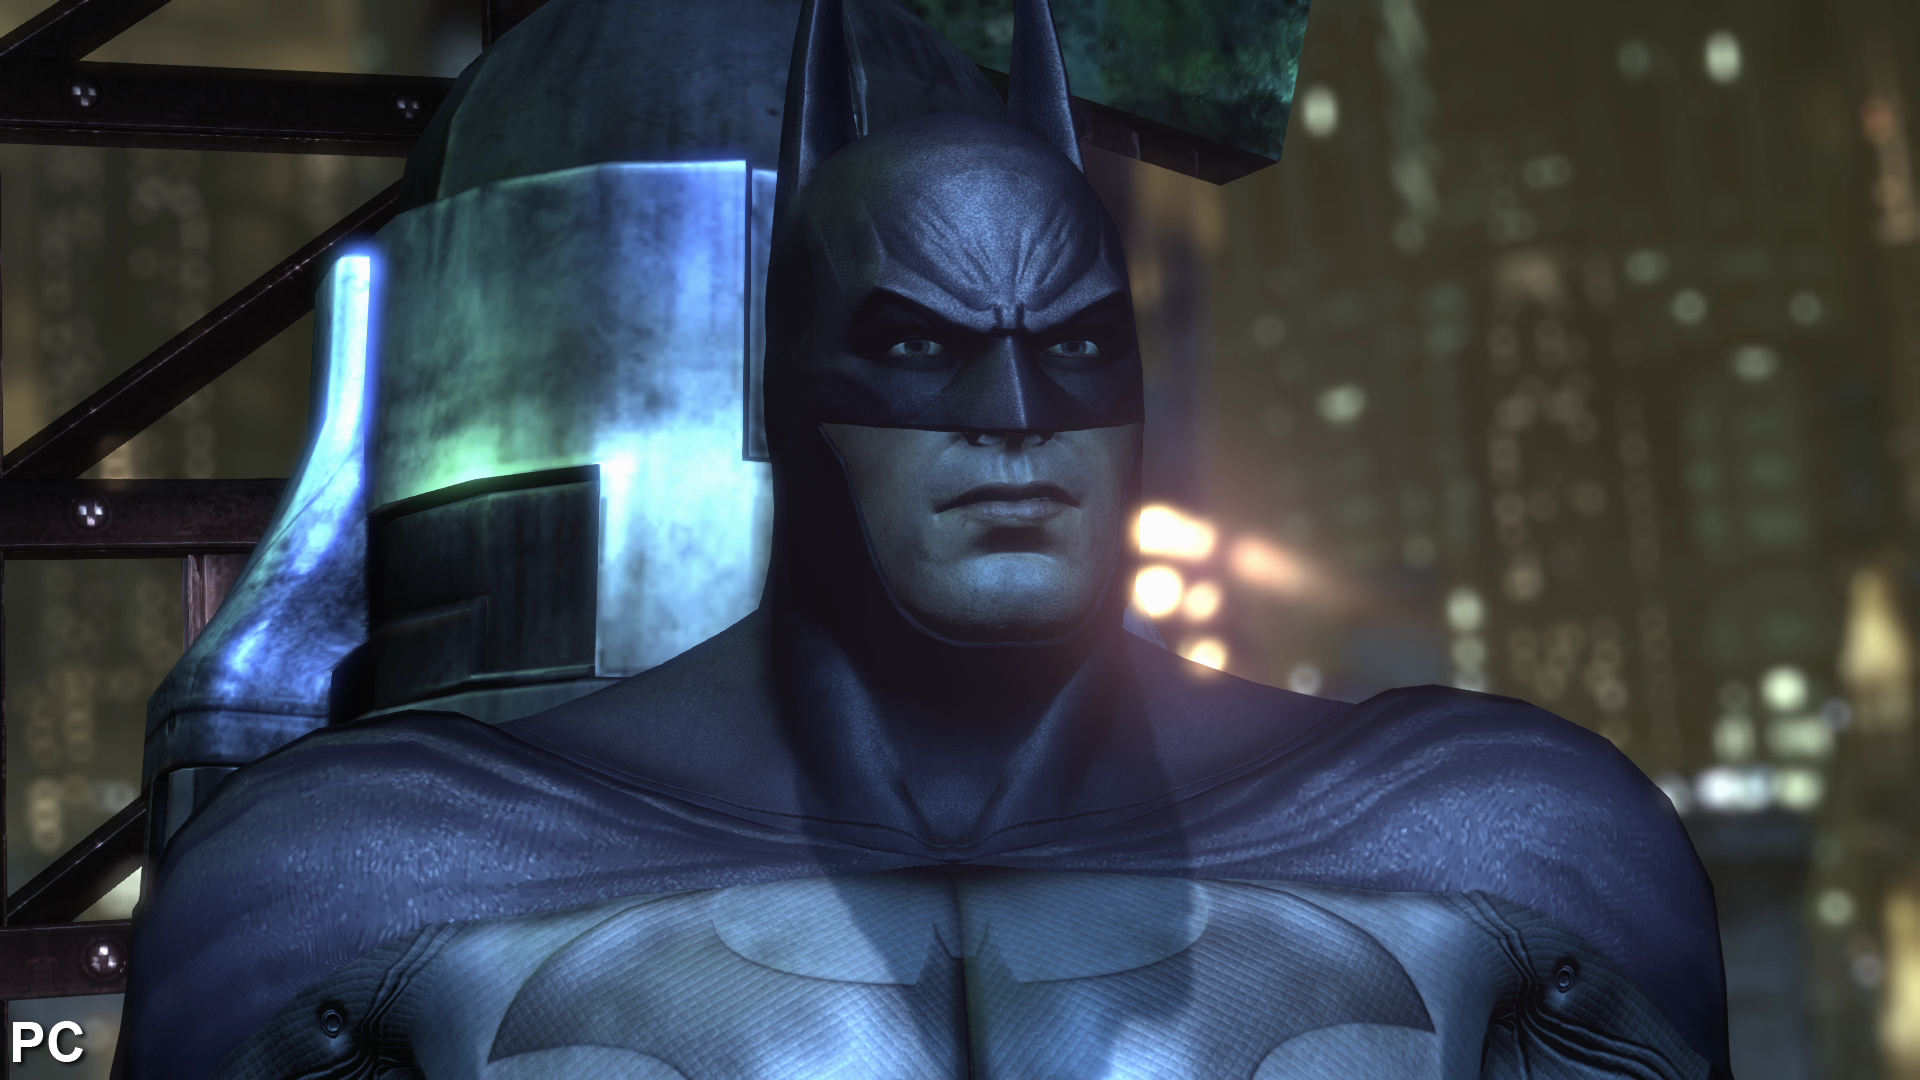 Xbox One Sports A Lower Horizontal Pixel Count Overall Blurring Over The New Texture Work Across Batmans Cape And Cowl Sadly The Remasters Show